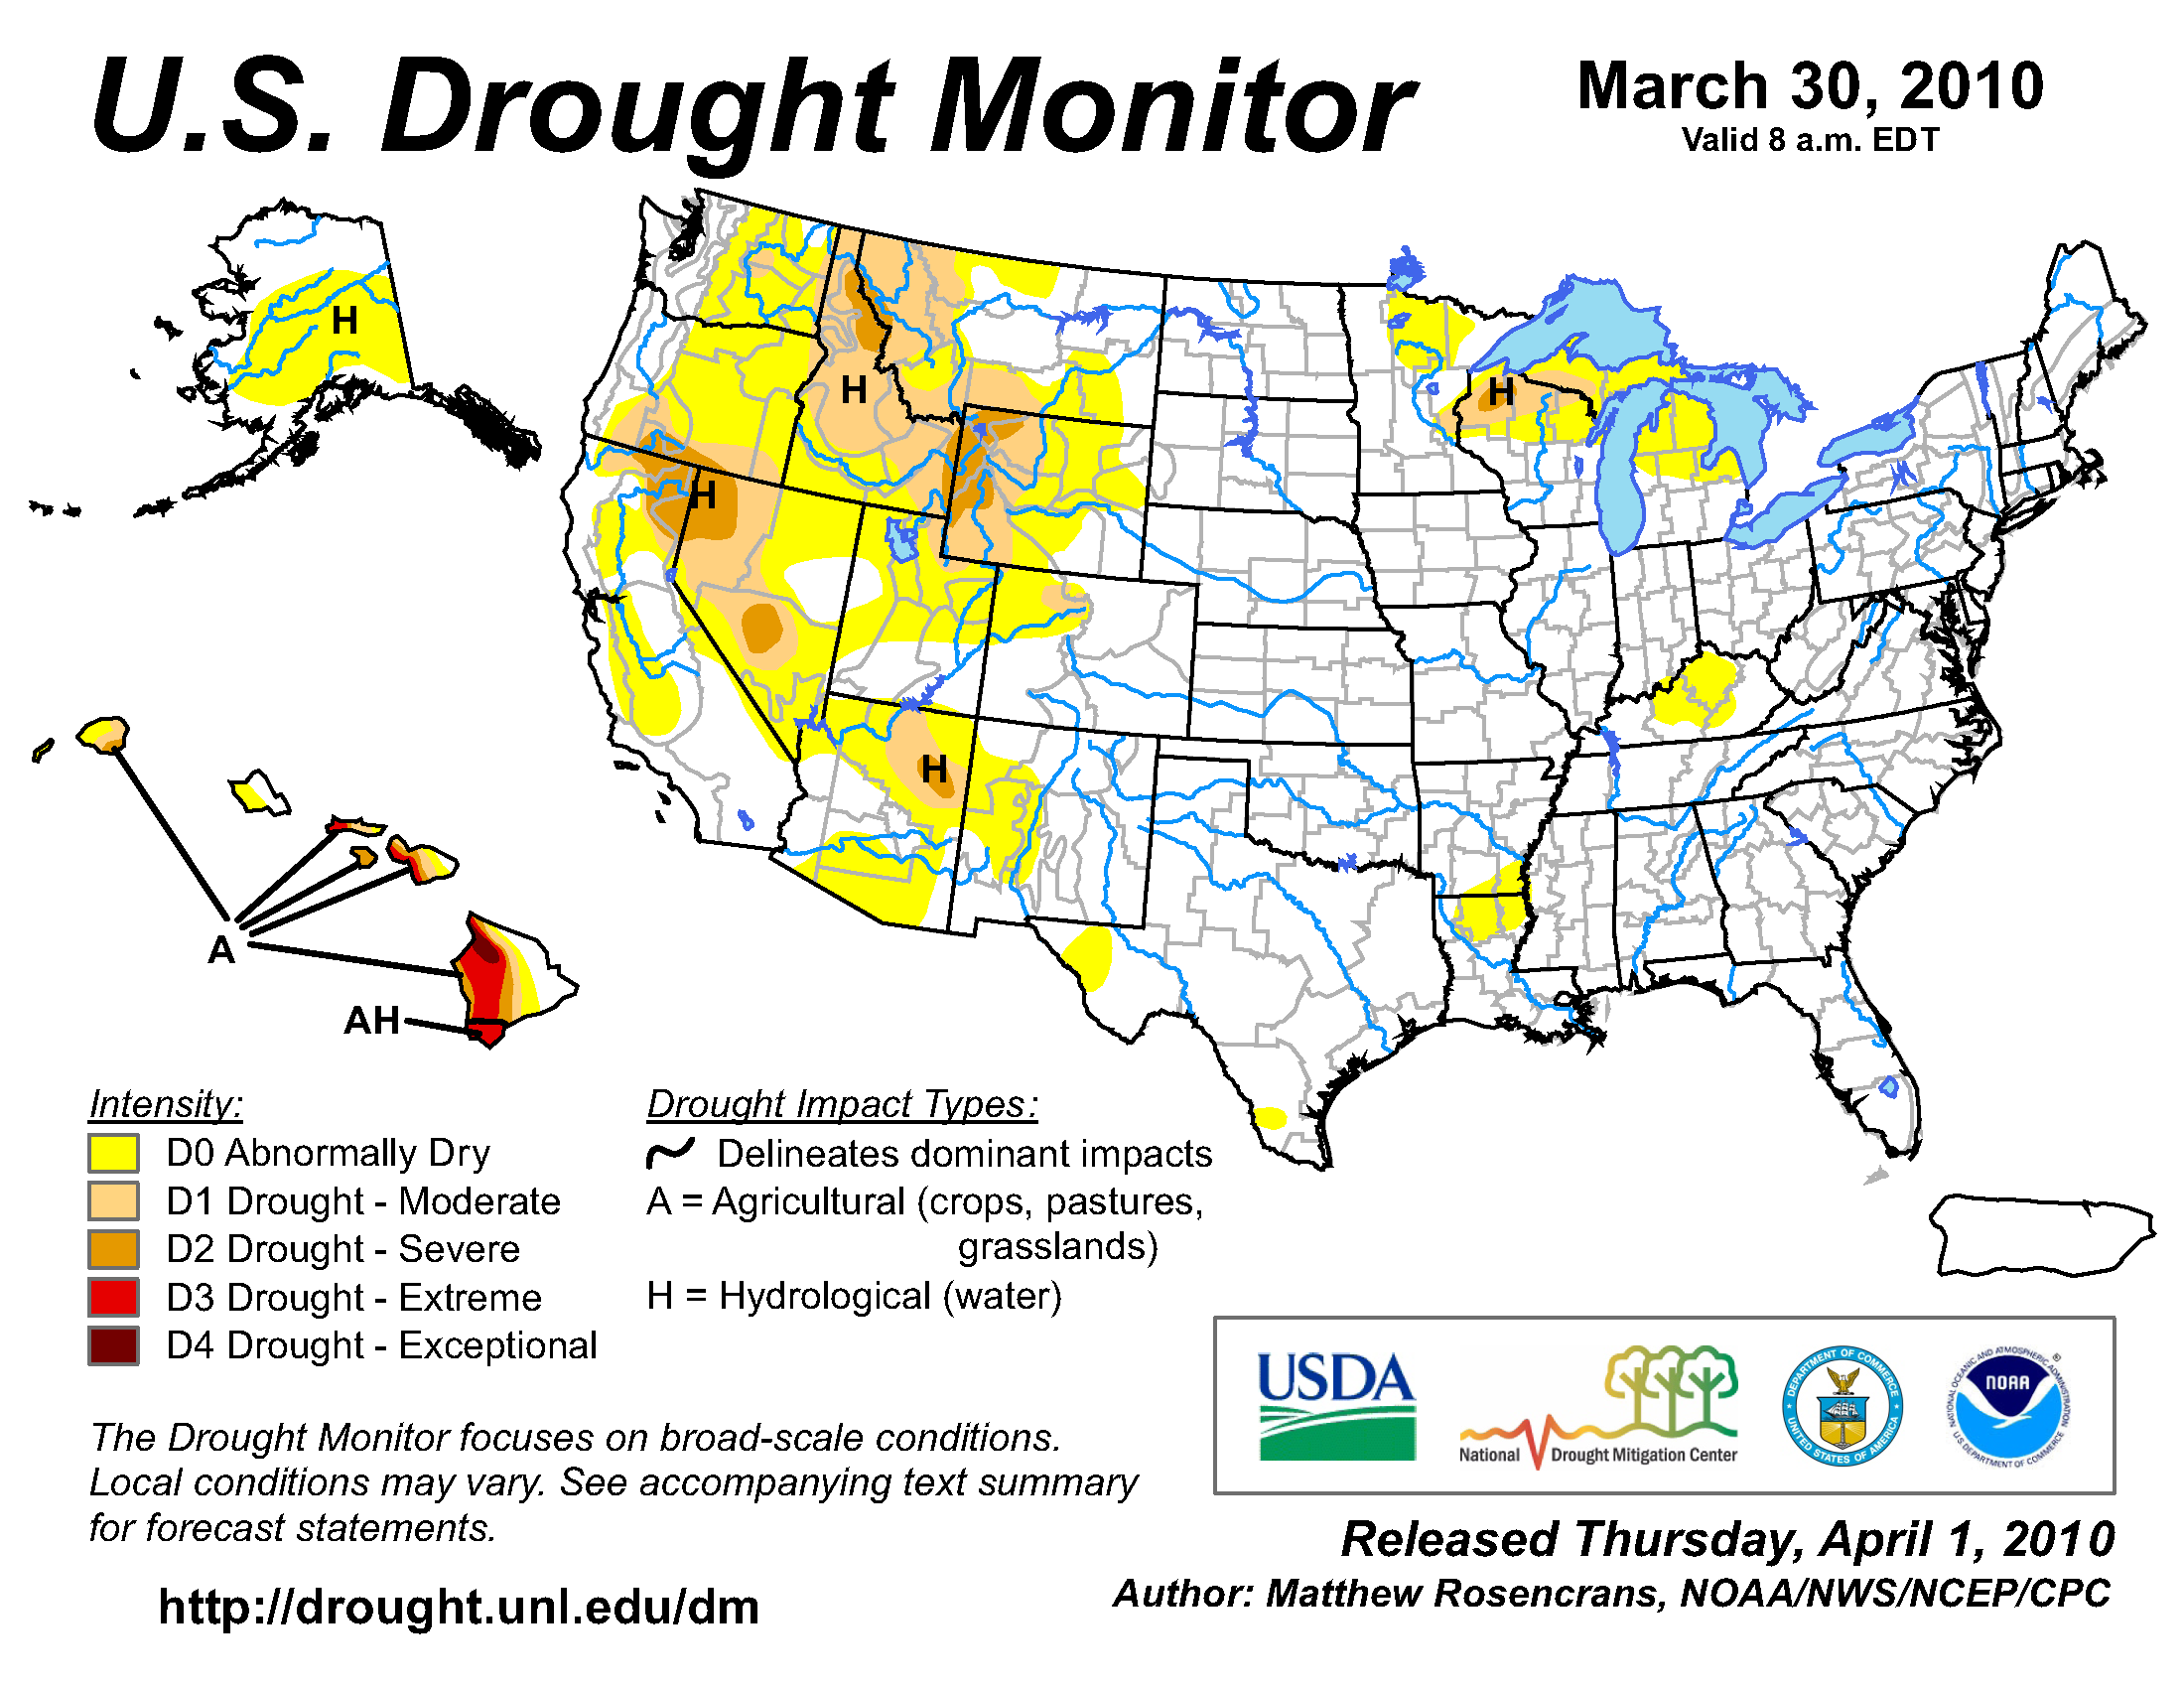 U.S. Drought Monitor map from 30 March 2010